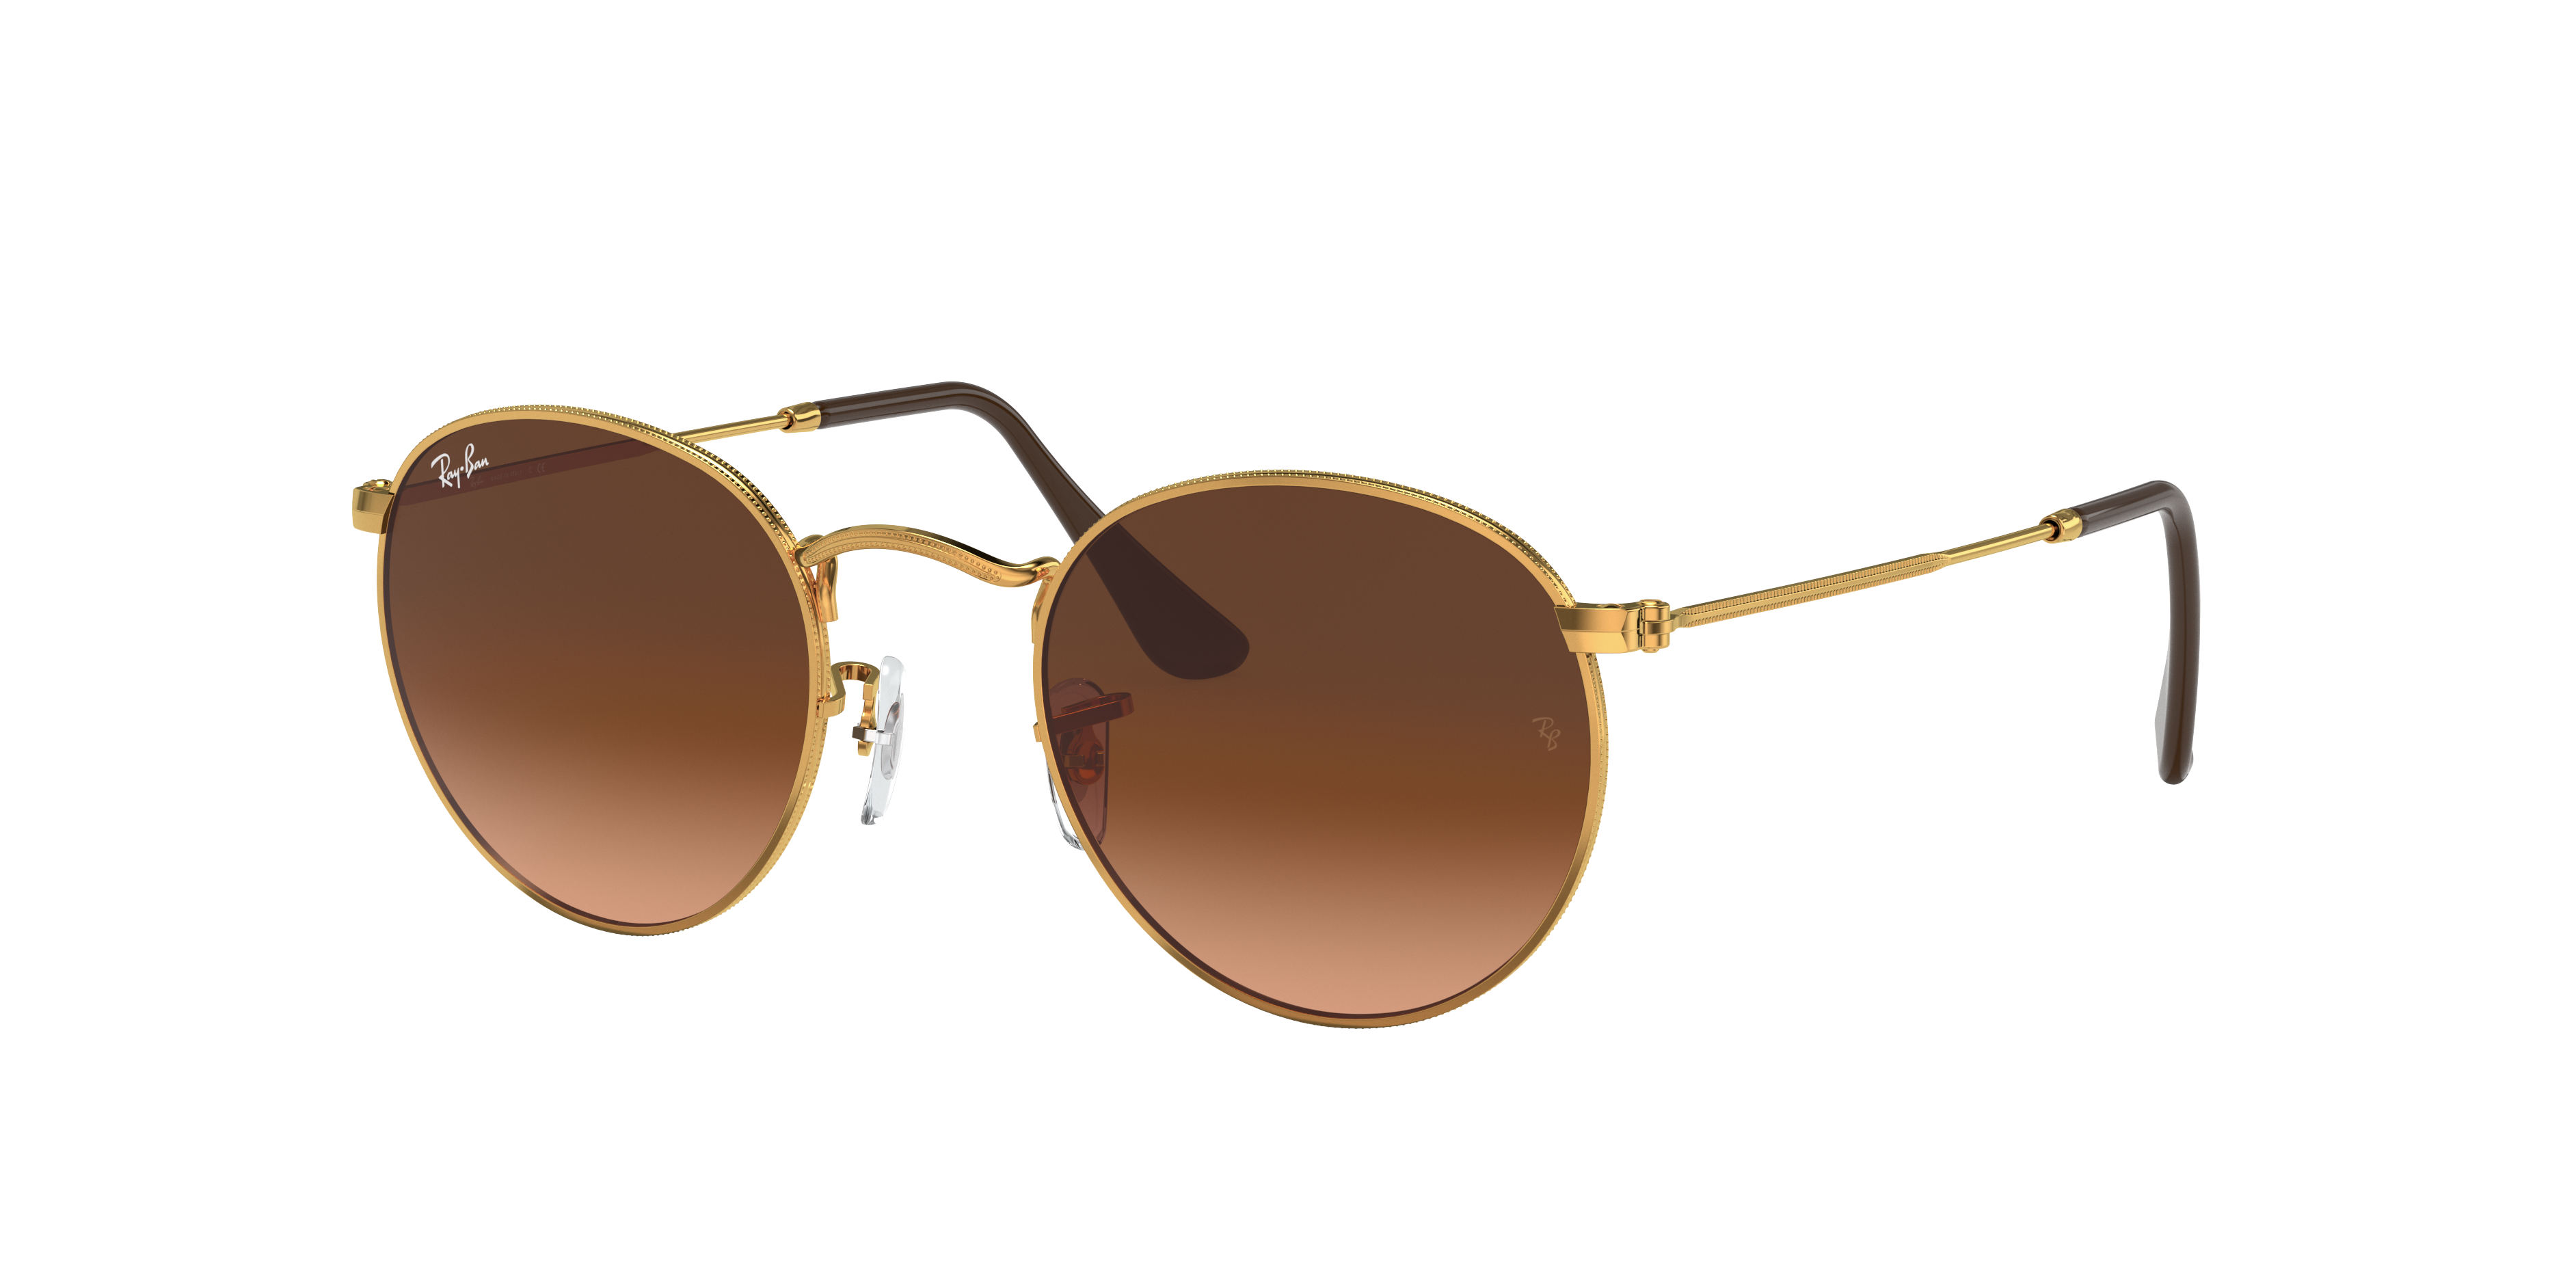 Ray-Ban Round Metal Bronze-Copper, Pink Lenses - RB3447